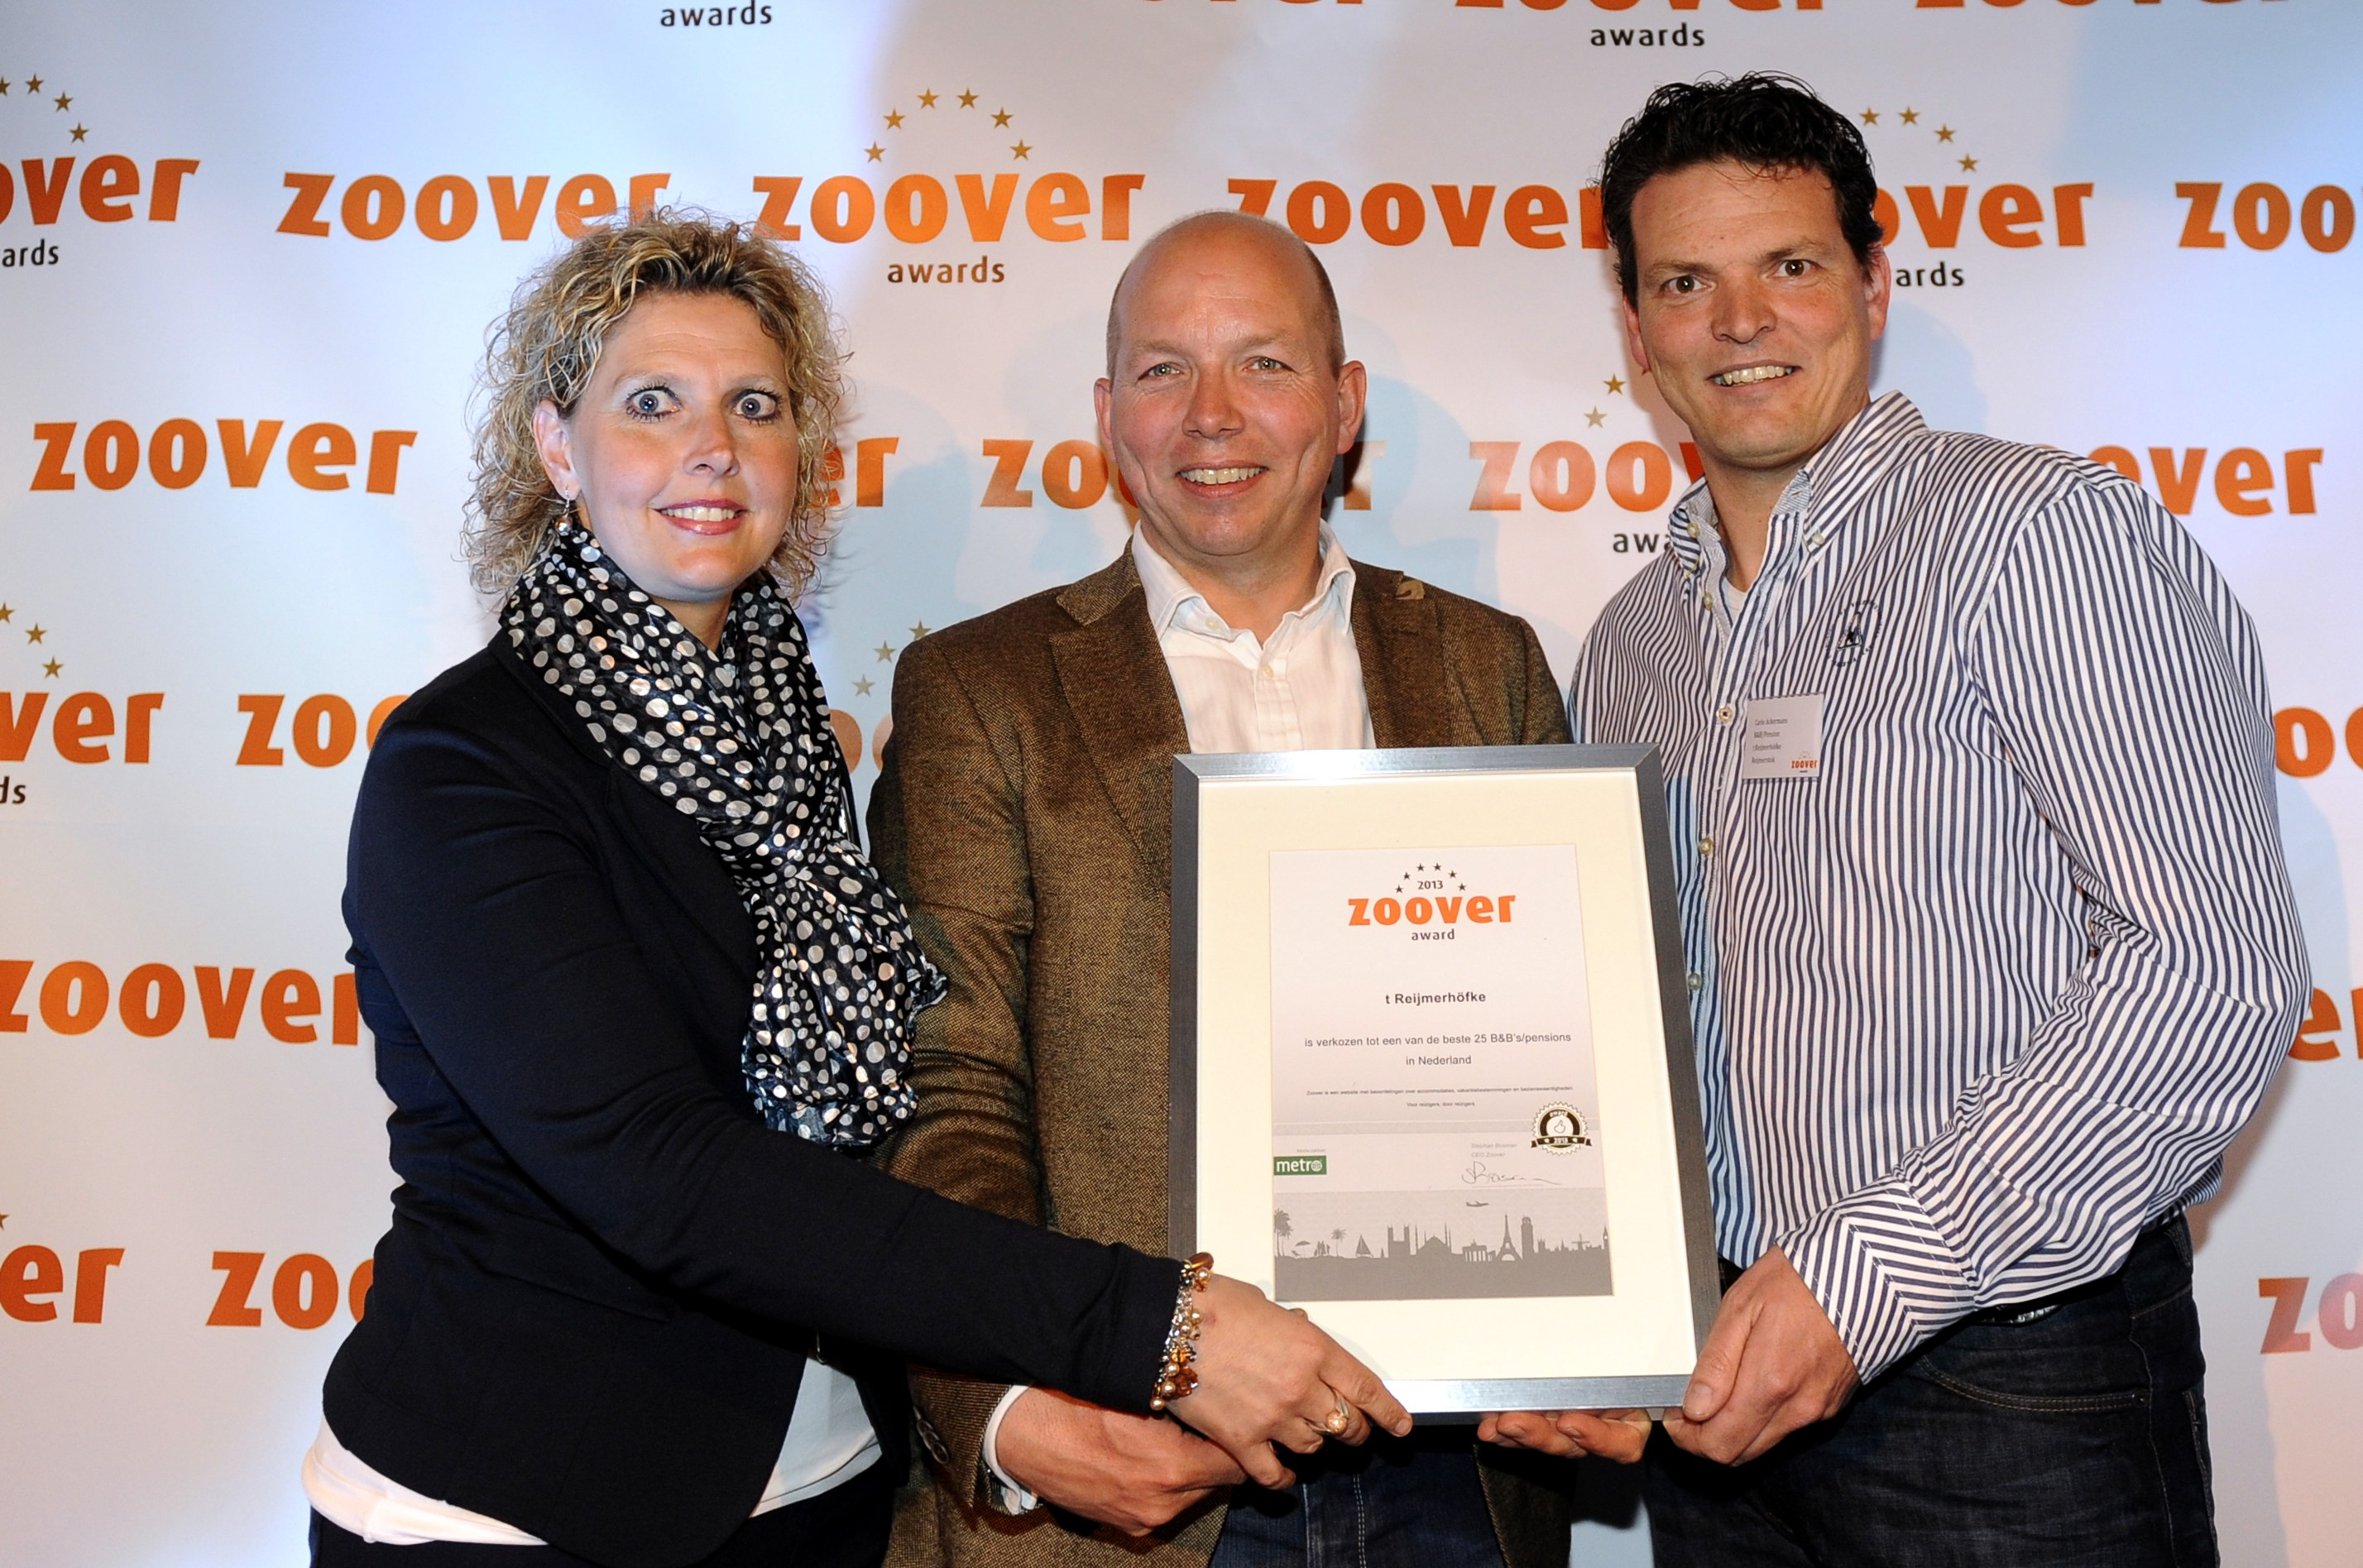 bron: Zoover.nl/Sander Chamid